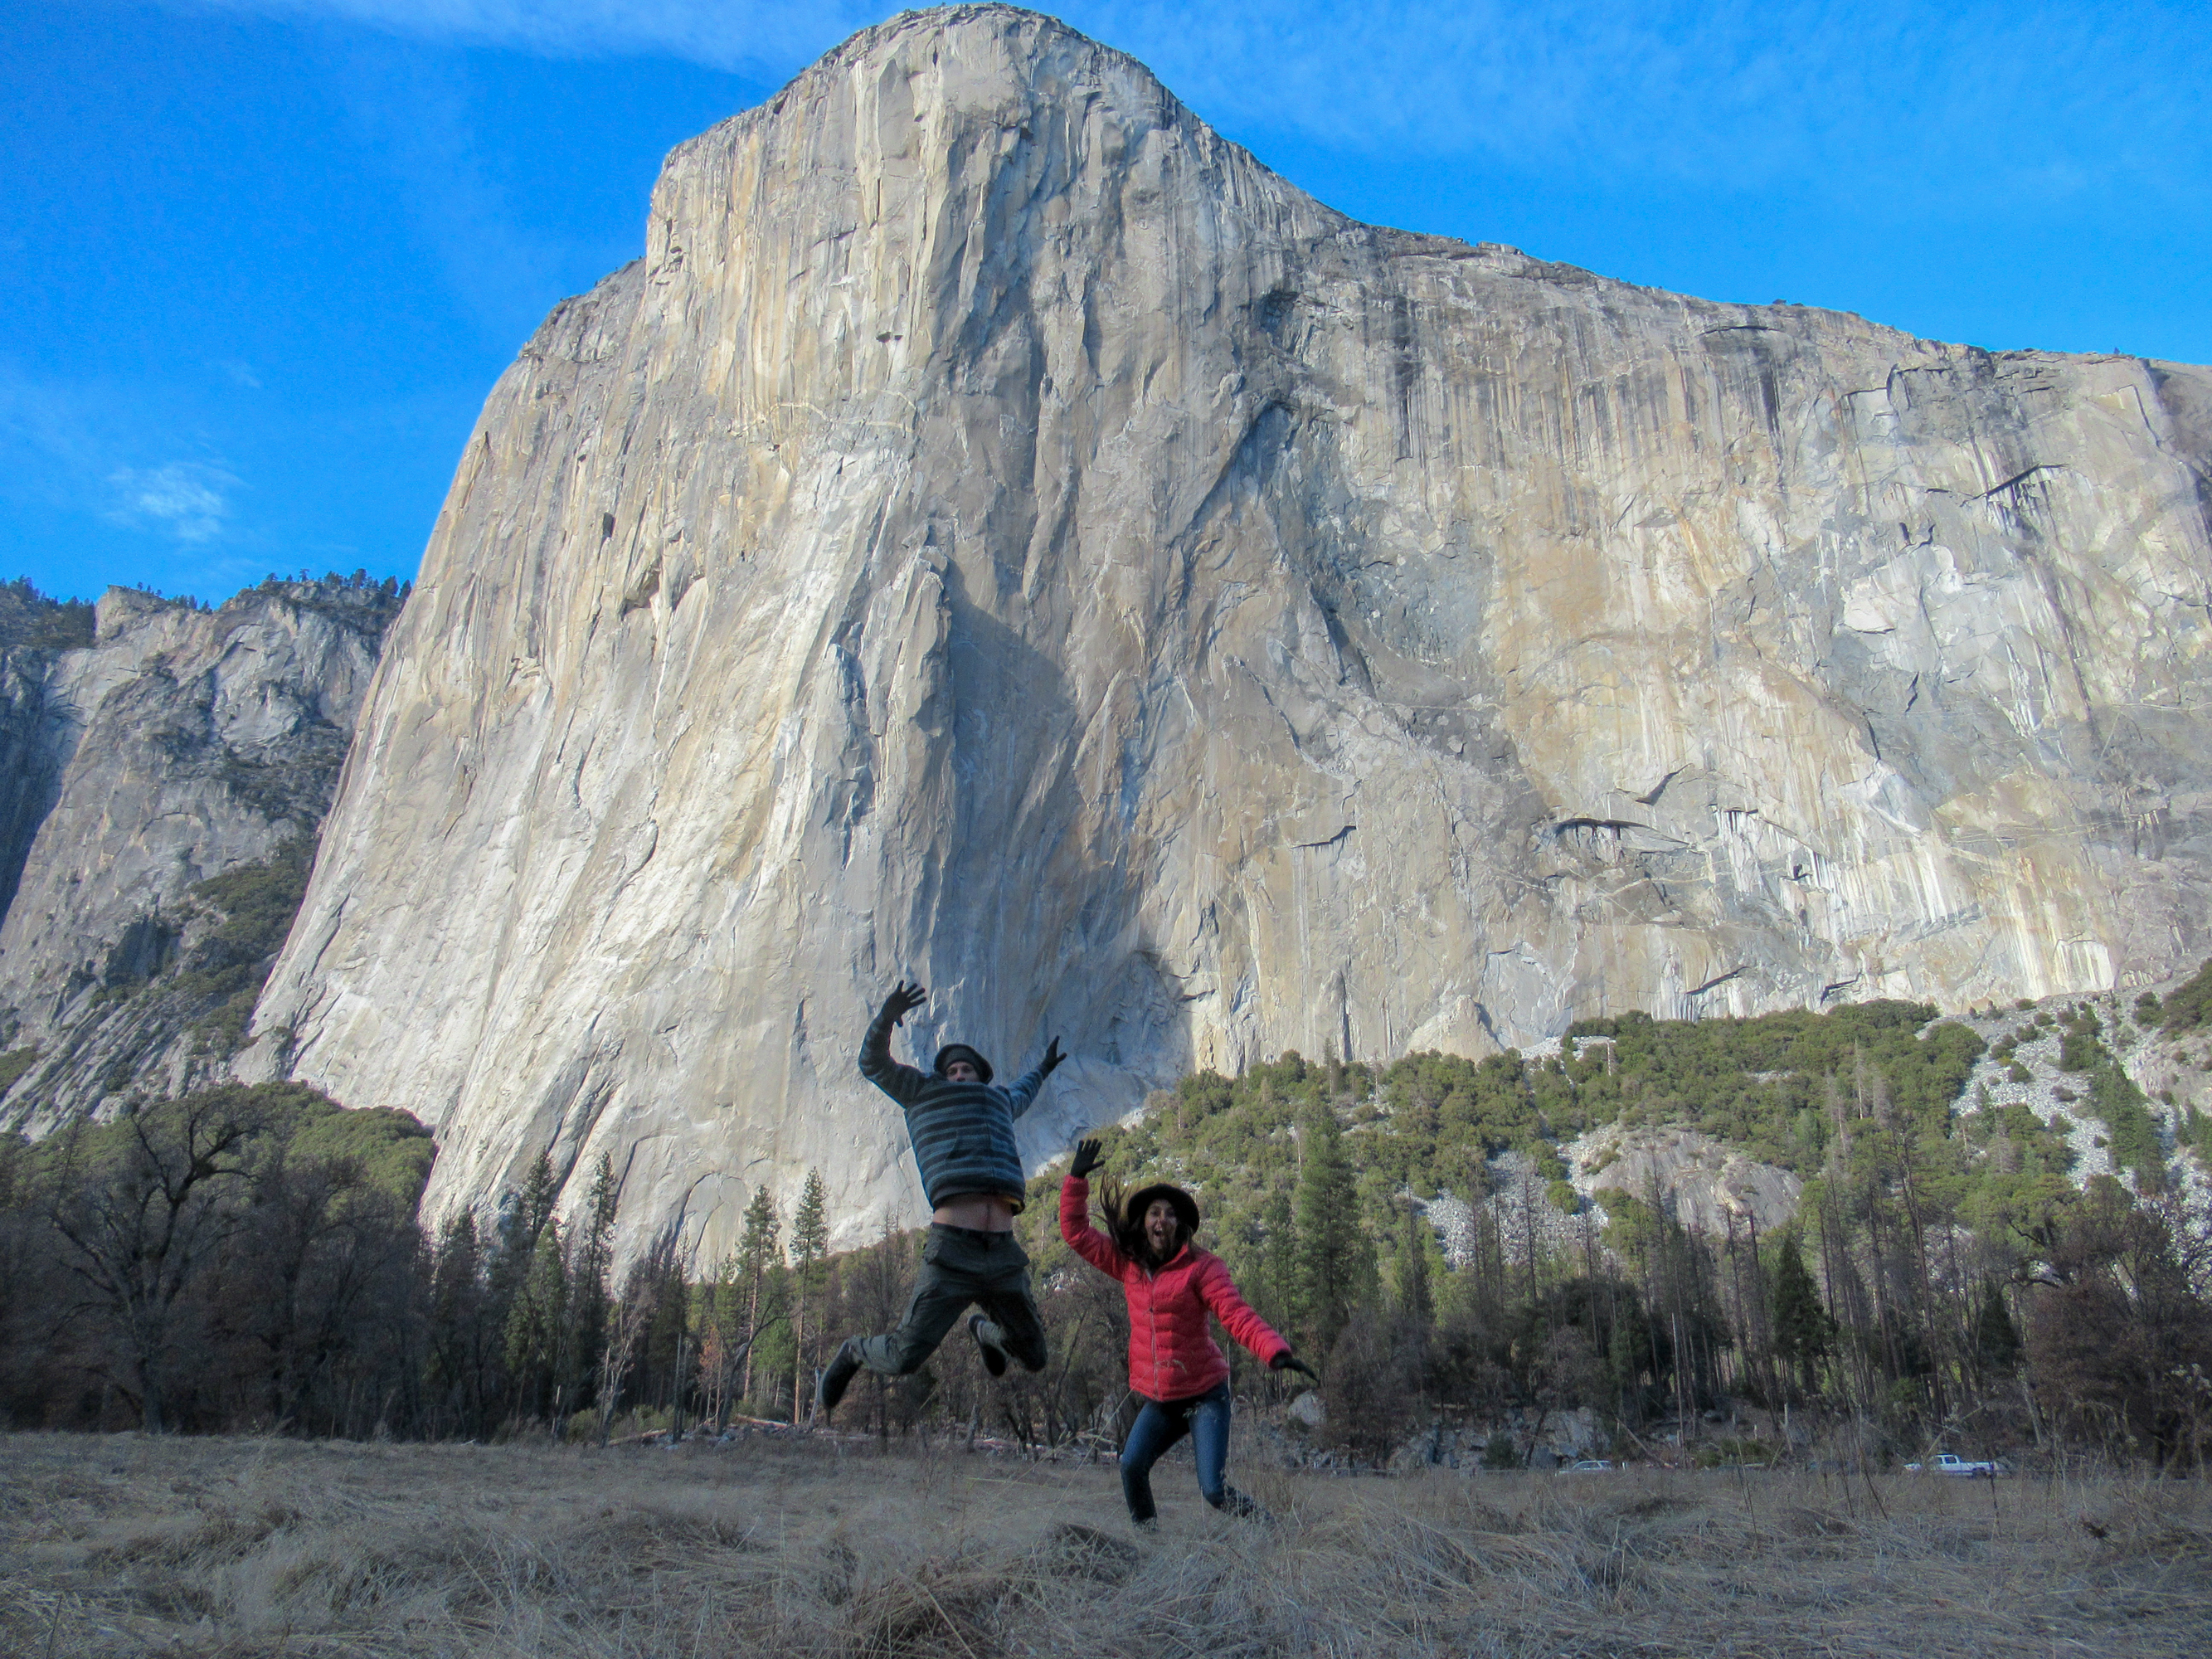 A couple jumps for a photo in front of El Capitan.